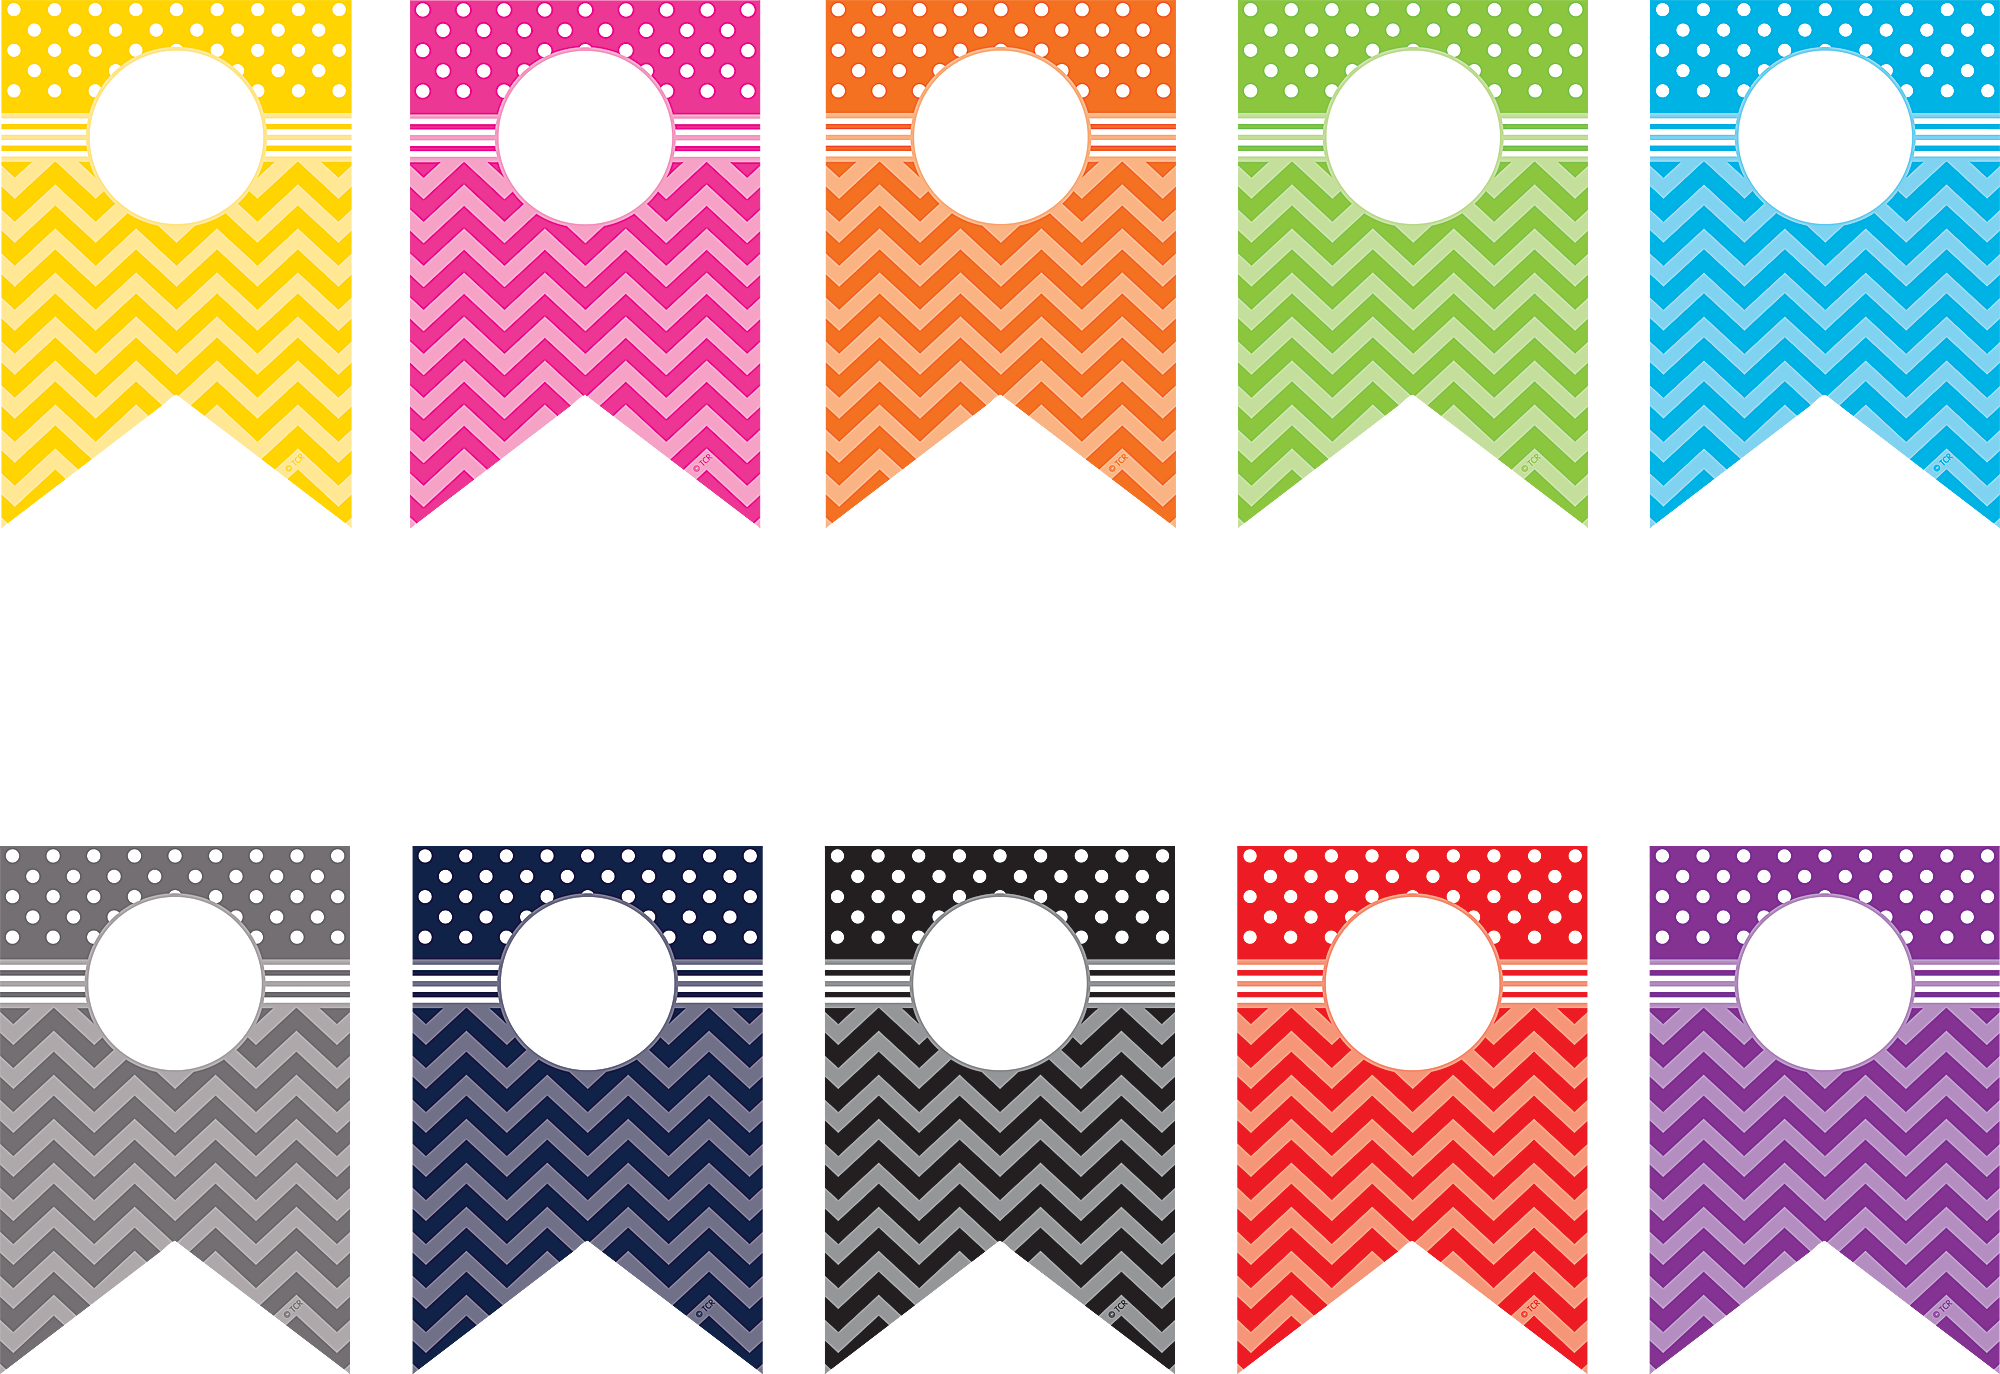 School pennant clipart jpg freeuse library Chevrons and Dots Pennants Accents | Bulletin board, Classroom decor ... jpg freeuse library